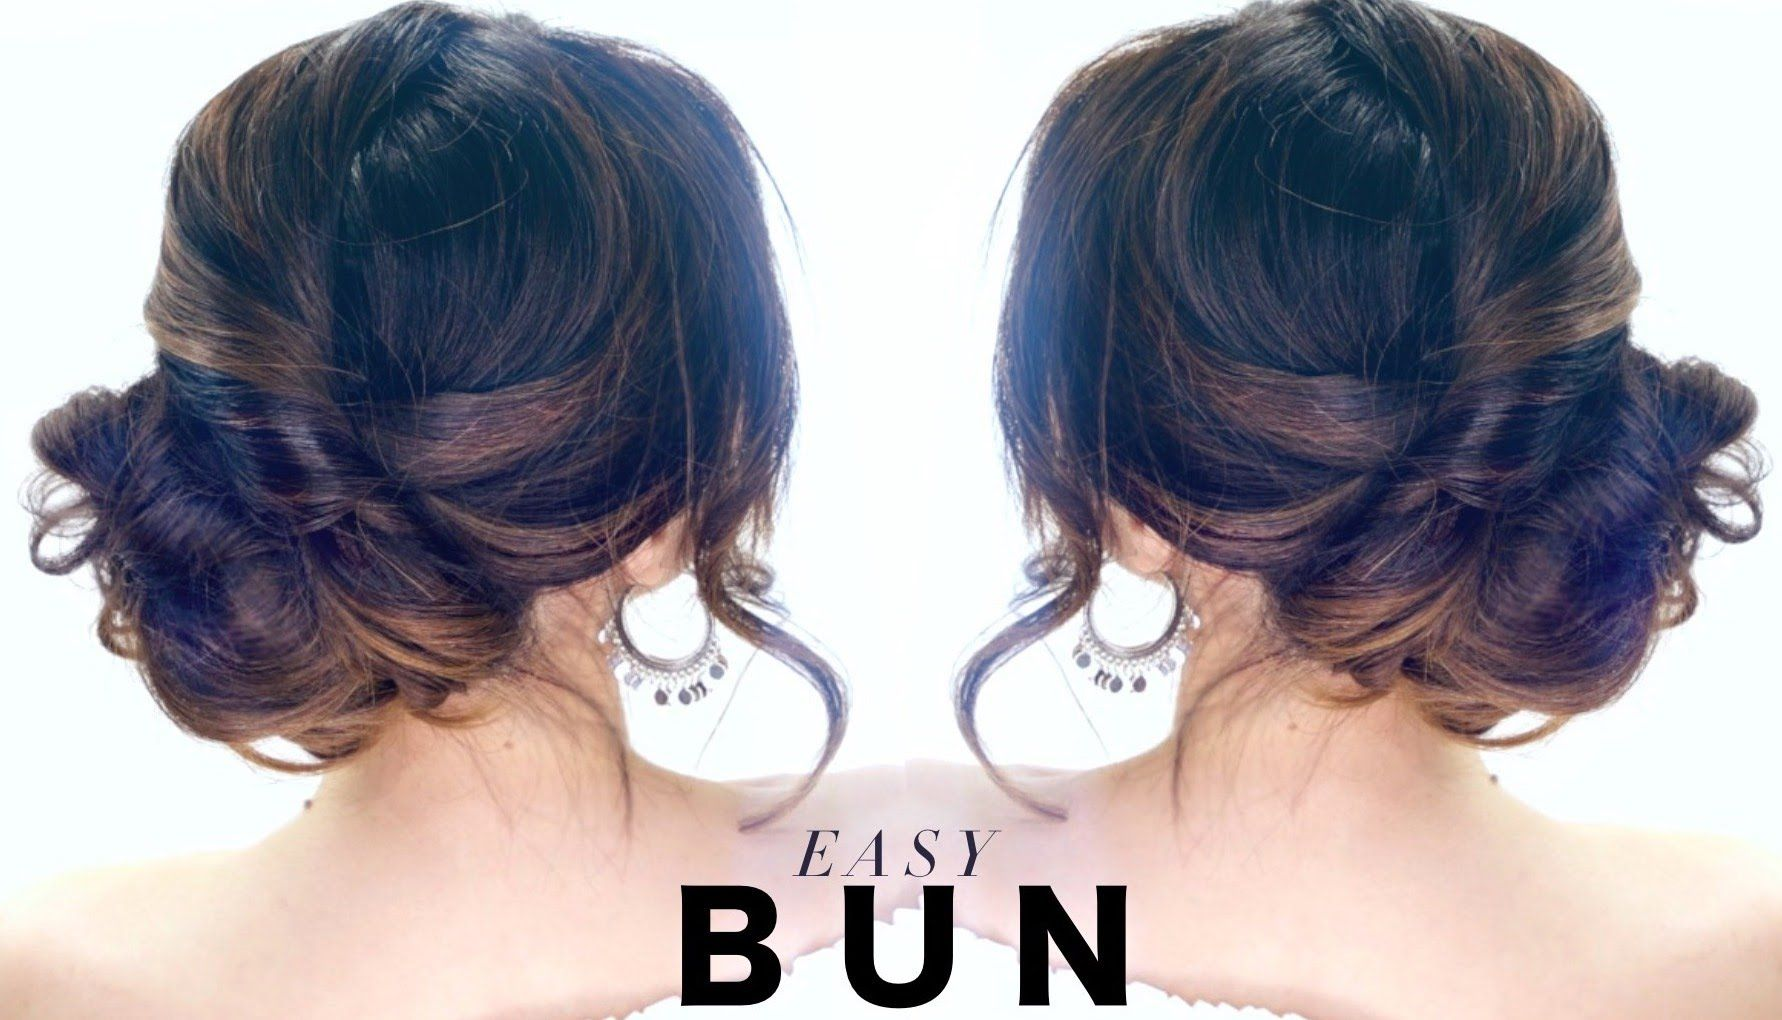 Minute elegant side bun hairstyle cute u easy updo hair